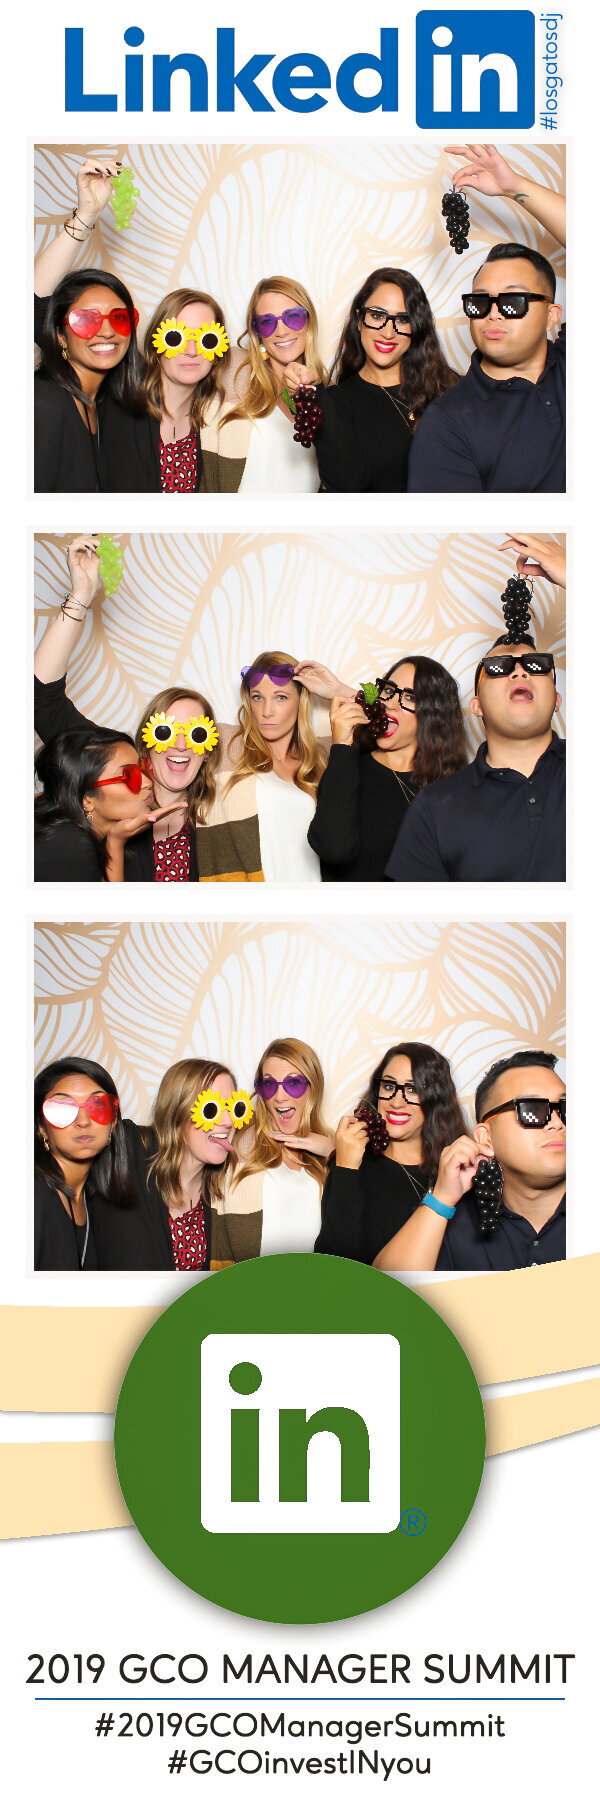 LOS GATOS DJ - LinkedIn GCO Manager Summit 2019 Photo Booth Photos (photo strips) (31 of 33) copy